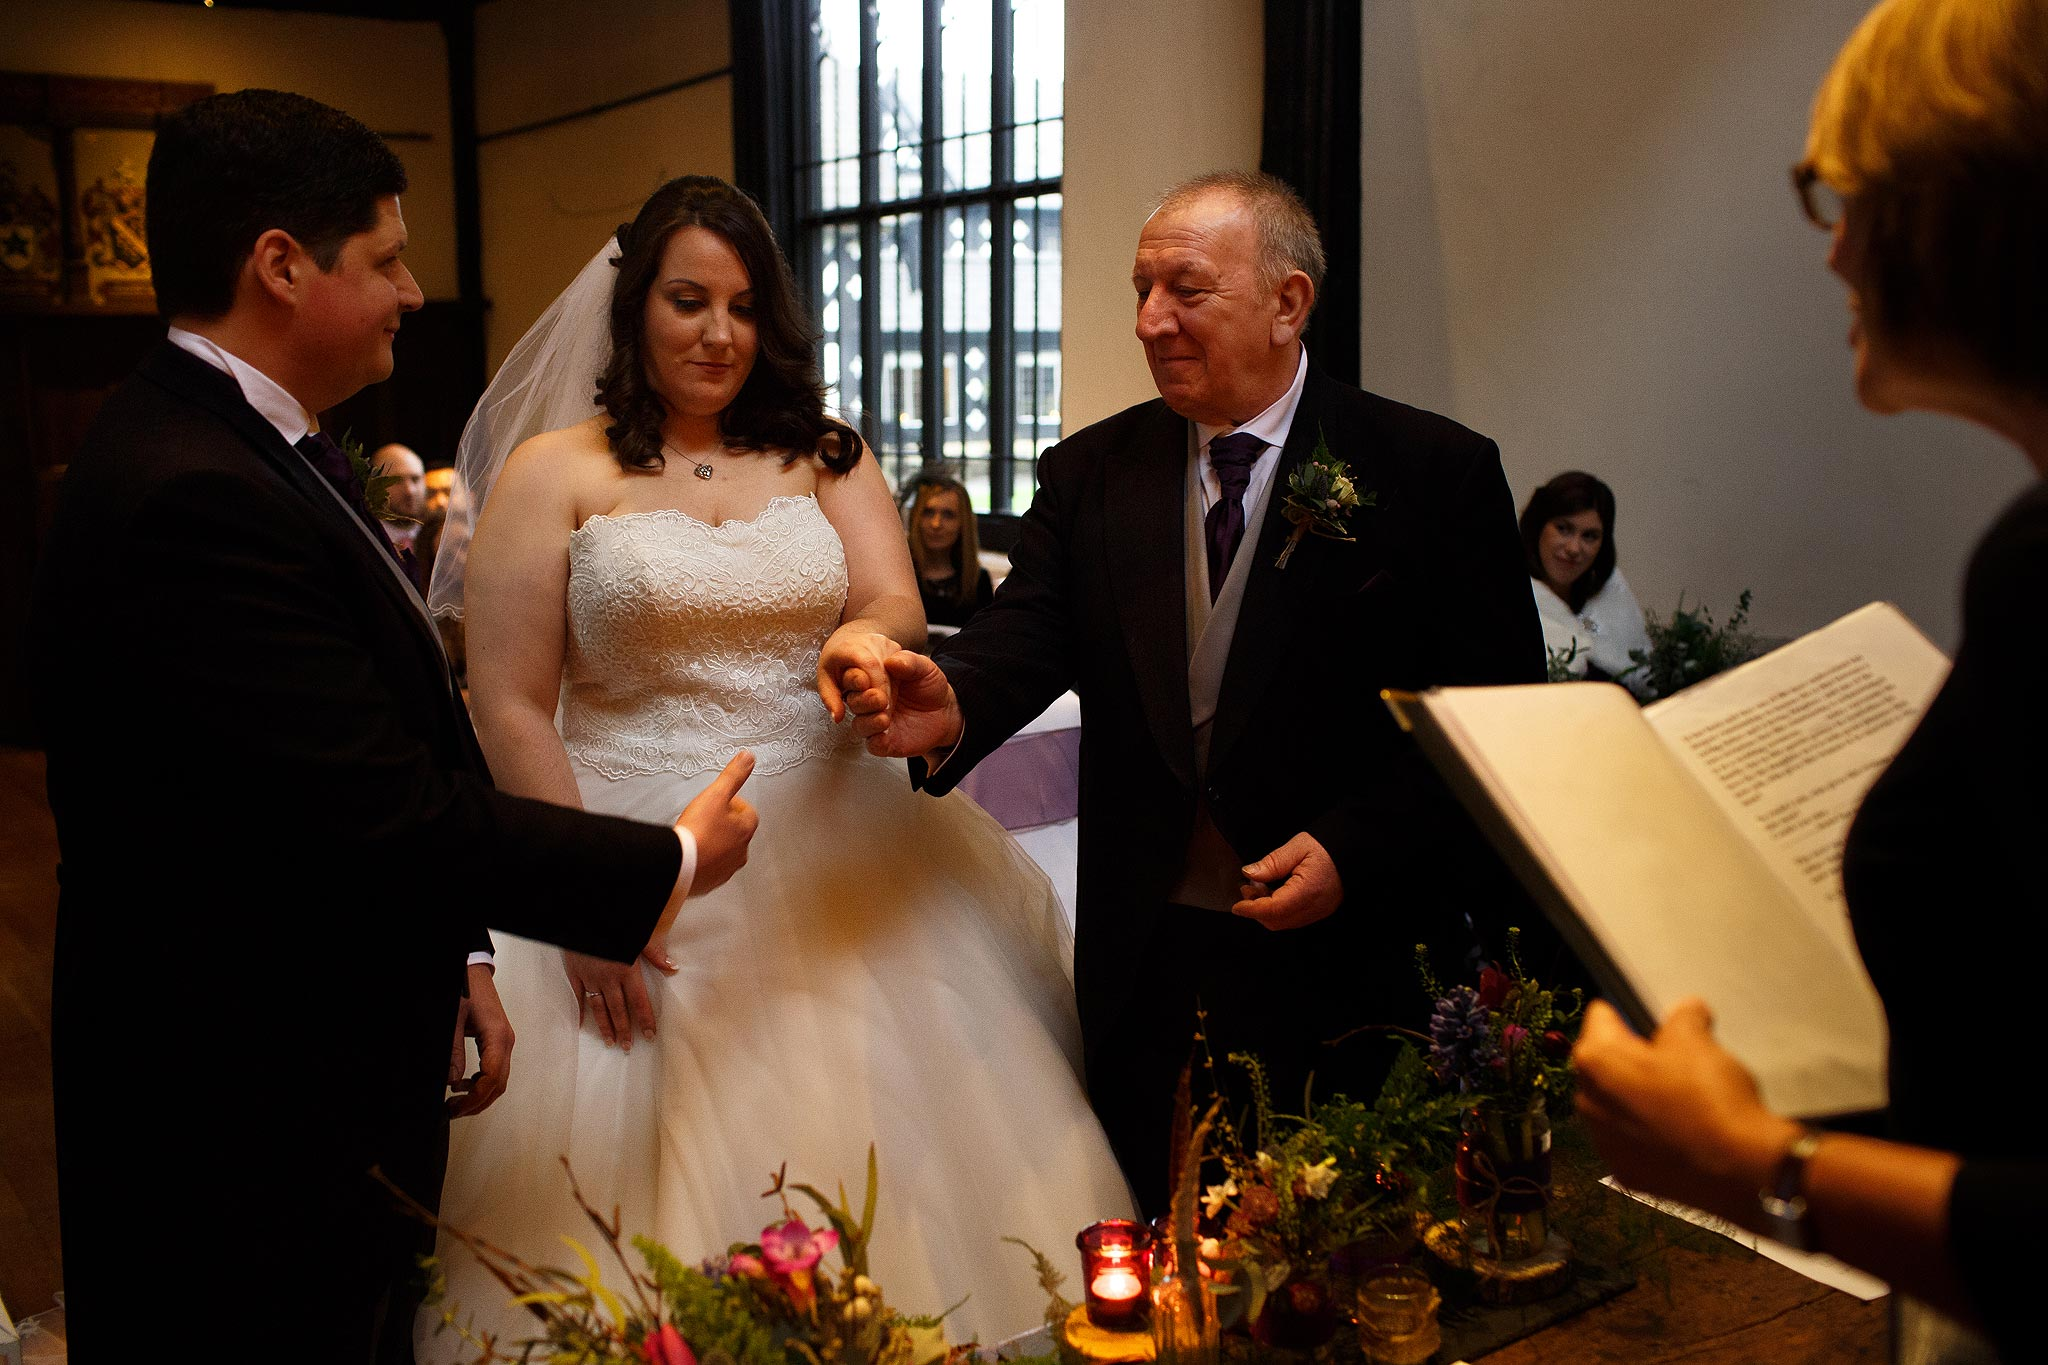 Dad passing his daughters hand to groom at Samlesbury Hall Wedding